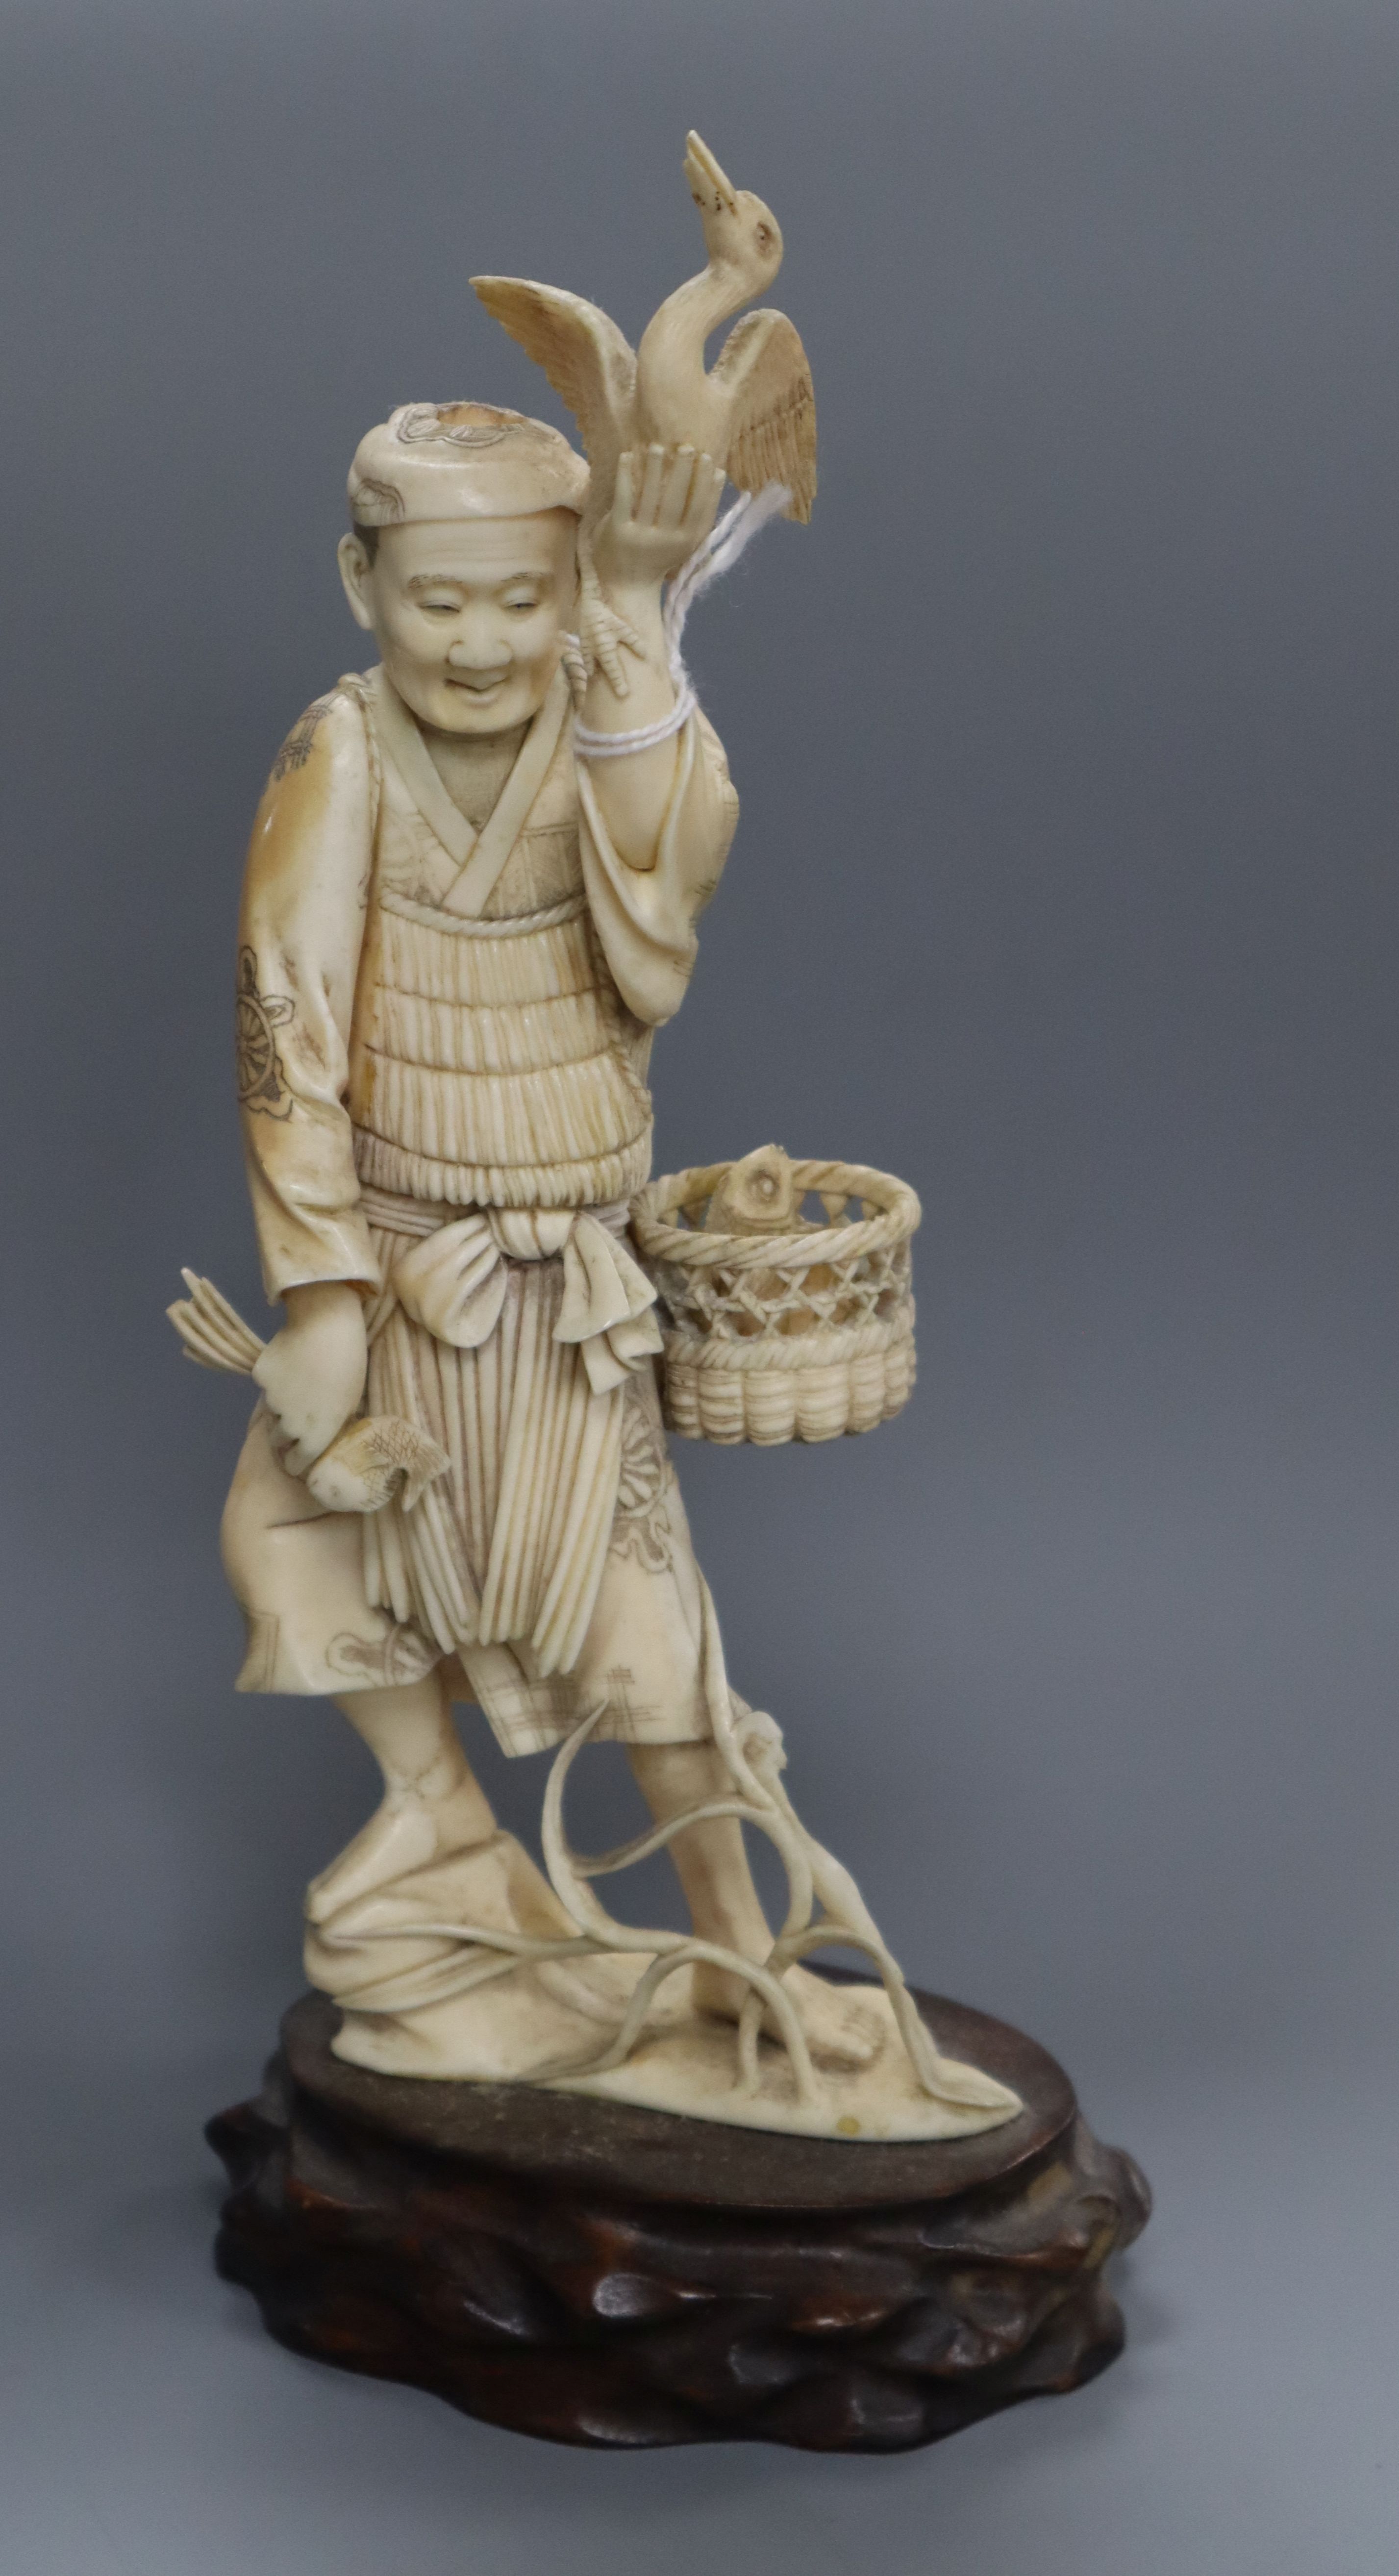 Lot 265 - A Japanese ivory figure of a cormorant fisherman, early 20th century height 24cm